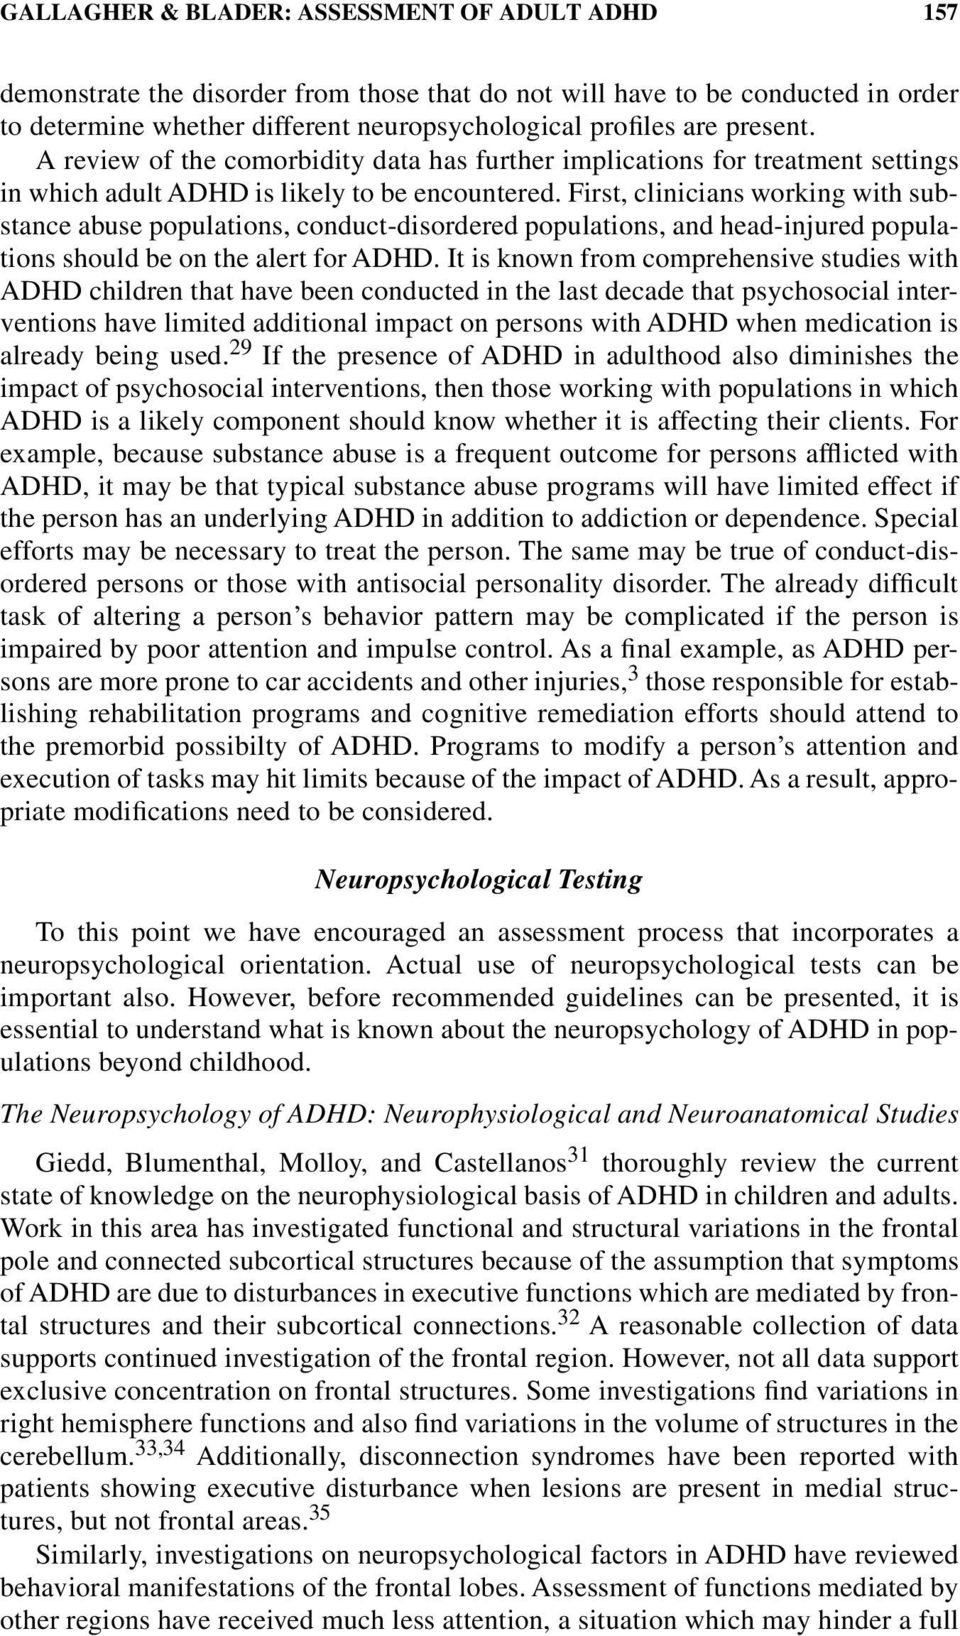 First, clinicians working with substance abuse populations, conduct-disordered populations, and head-injured populations should be on the alert for ADHD.